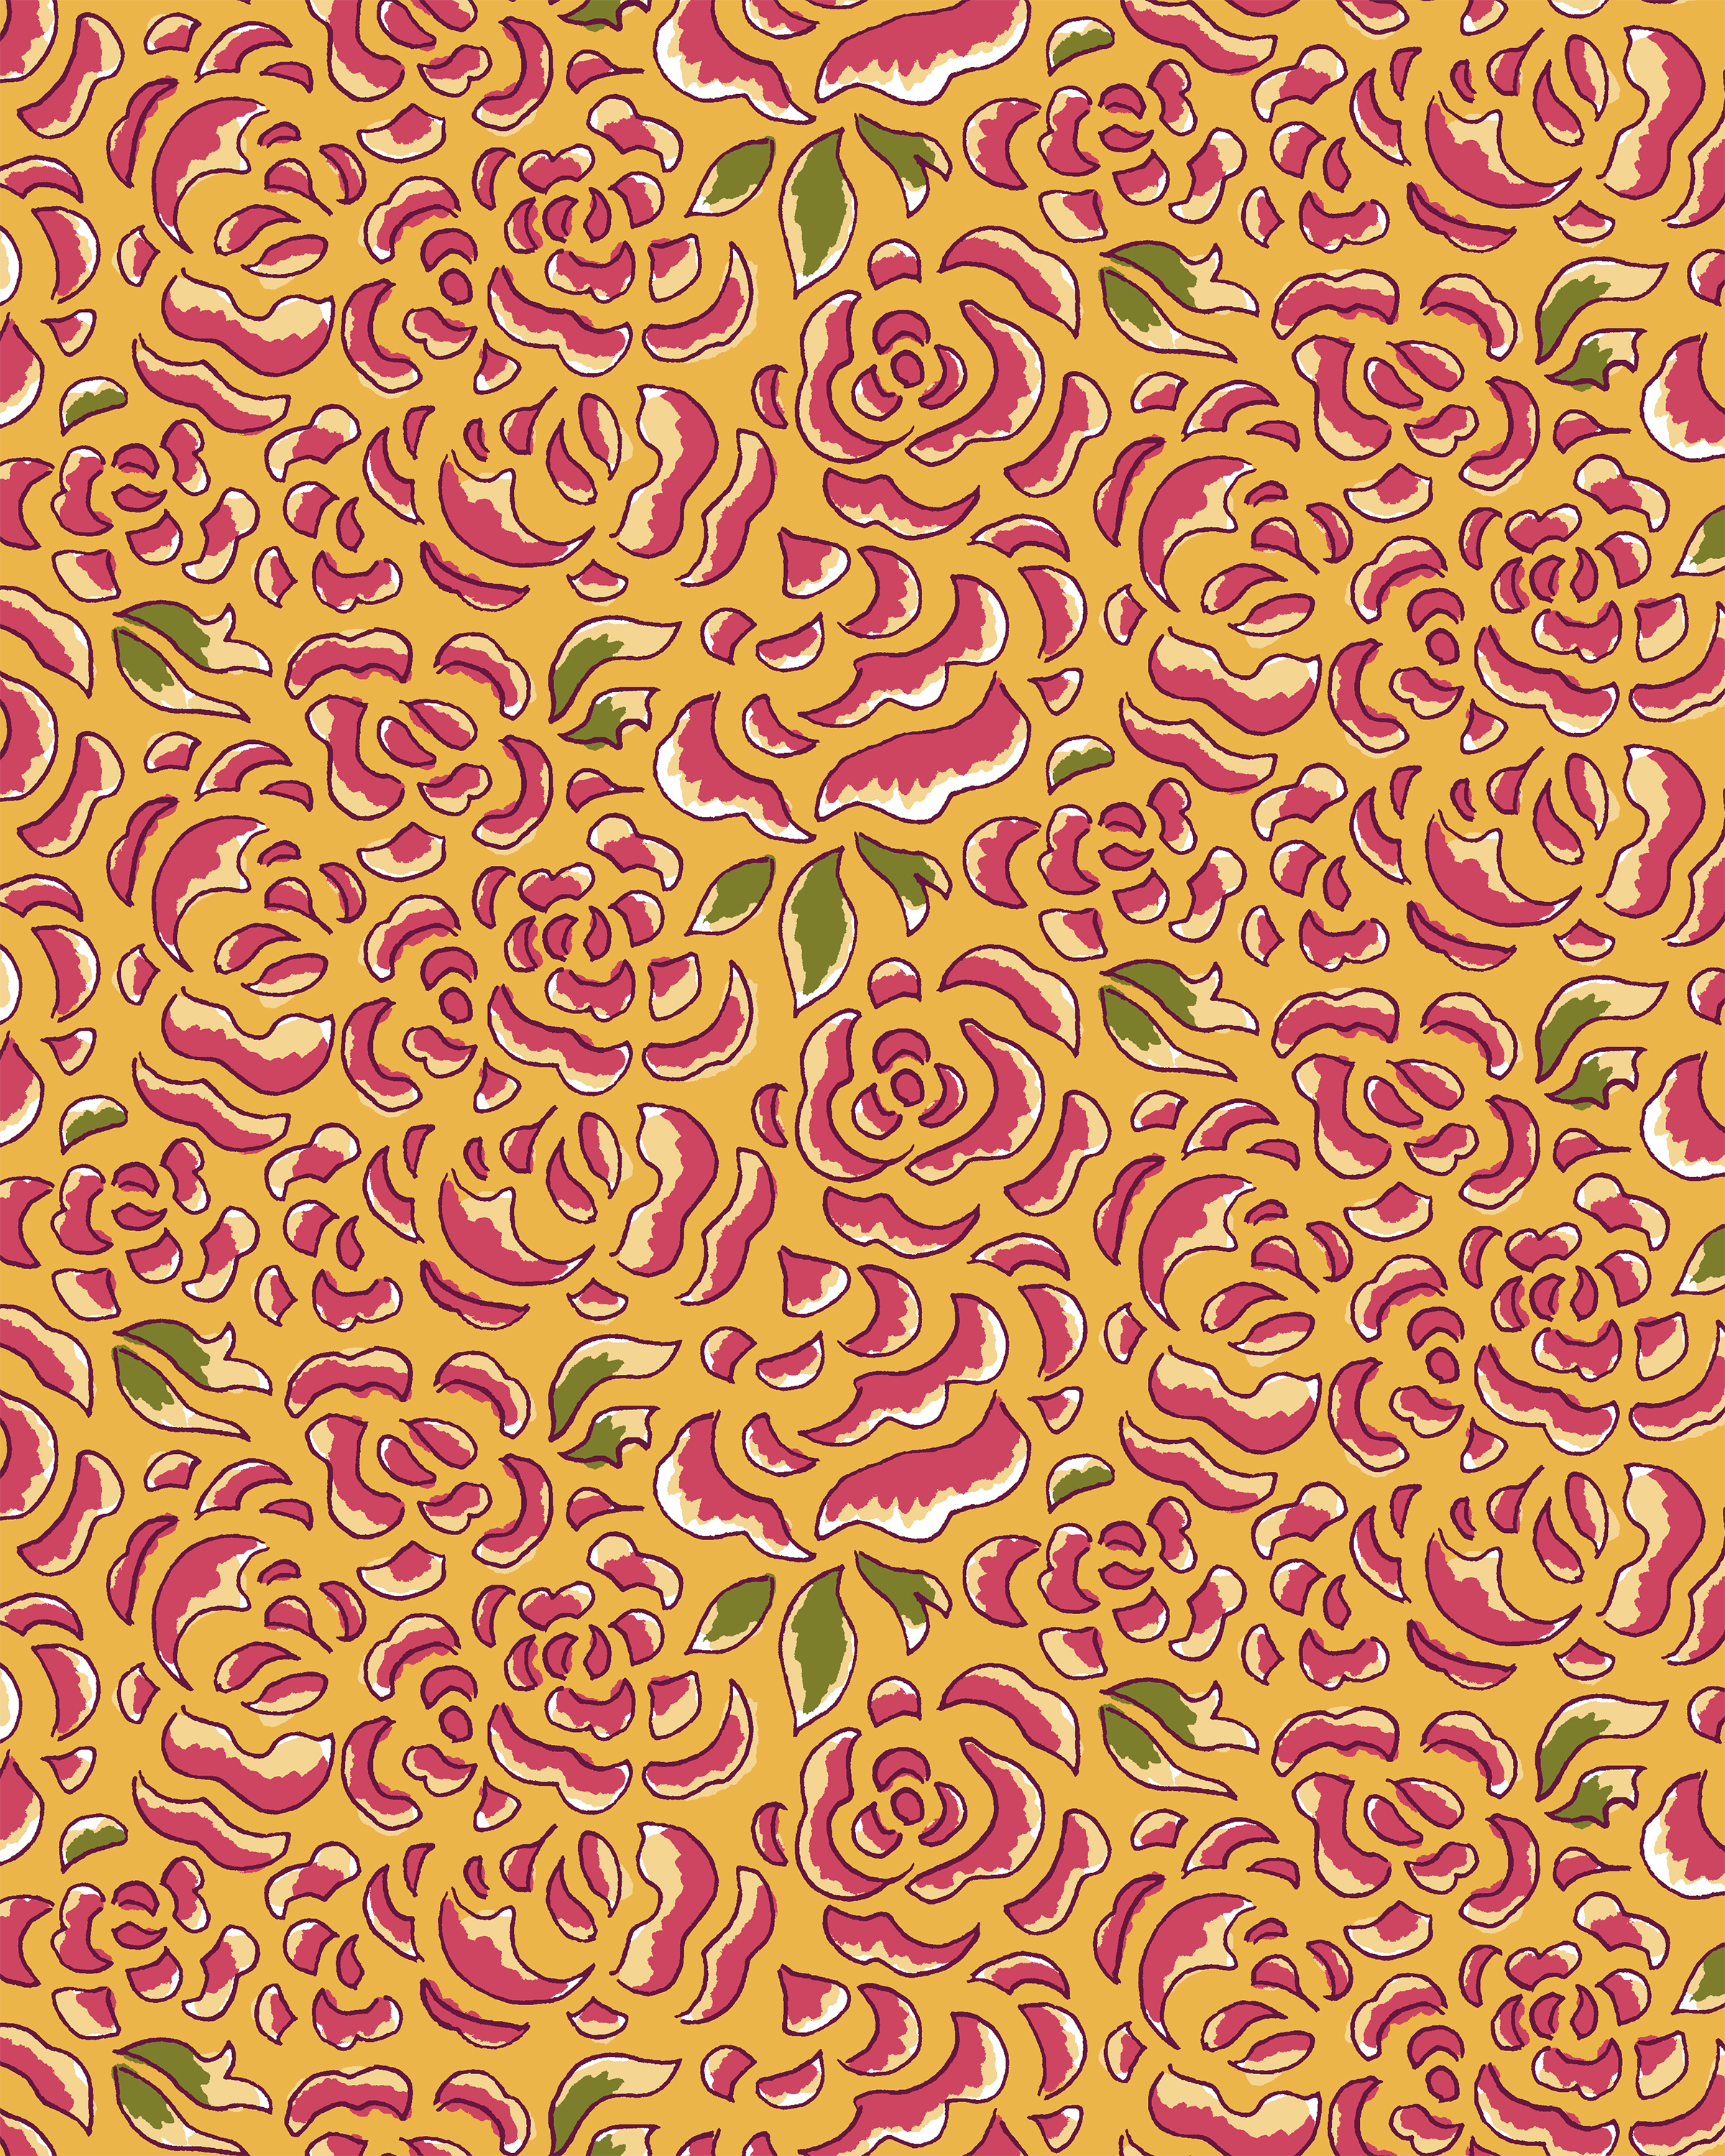 Roses Yellow and Pink.jpg